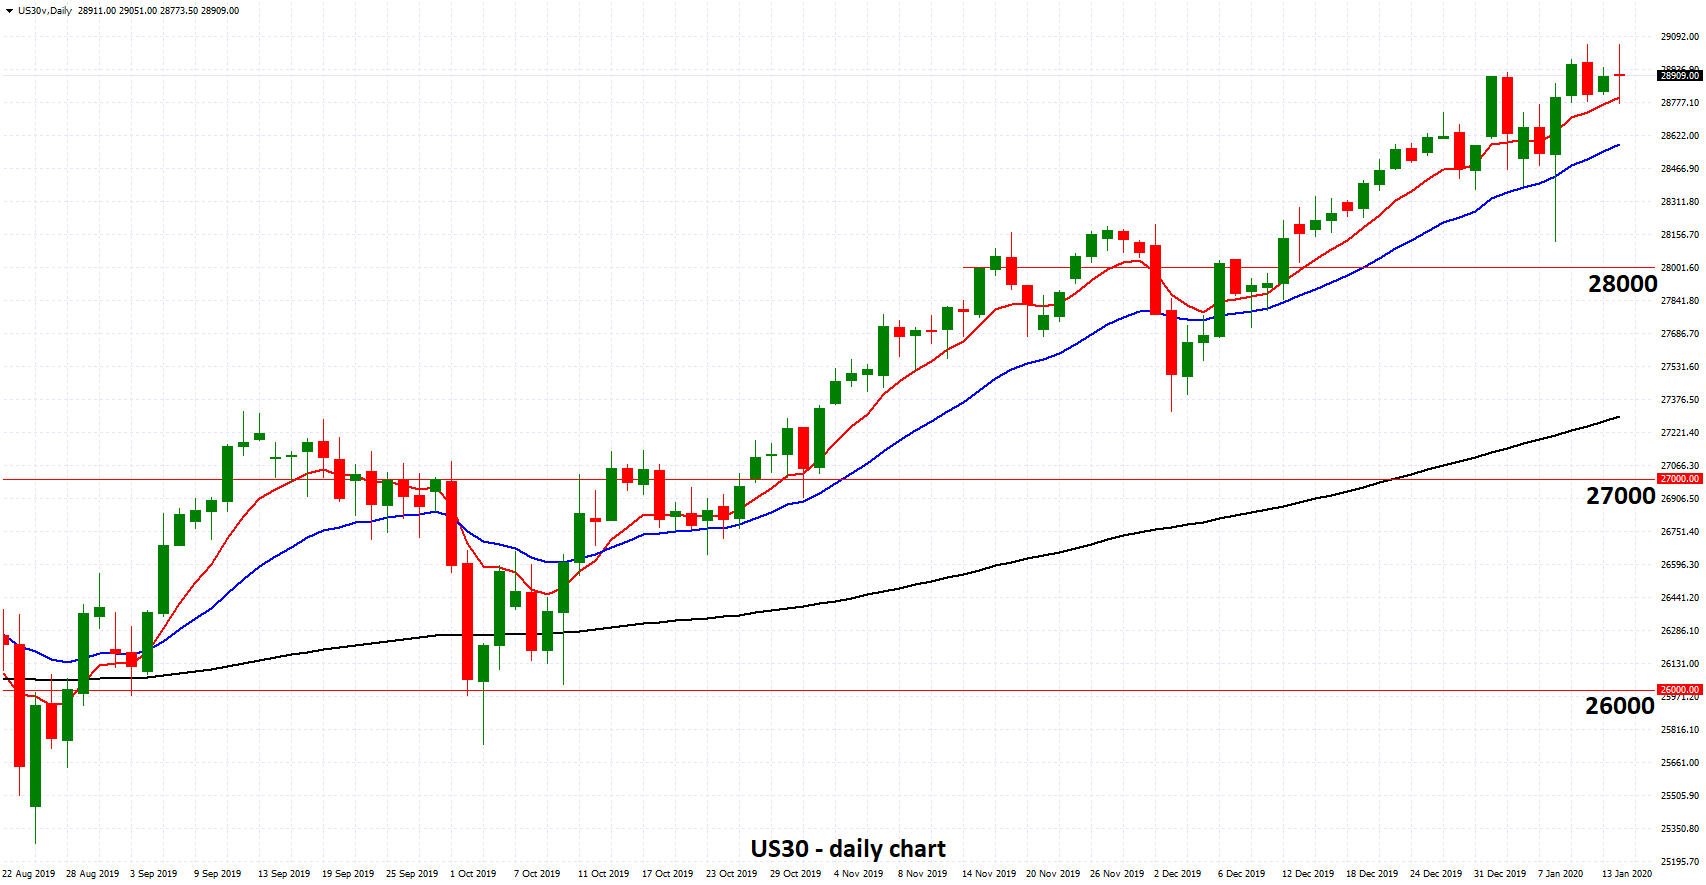 US30 - Remains near All Time Highs as Fed Forecasts almost ideal Outcome